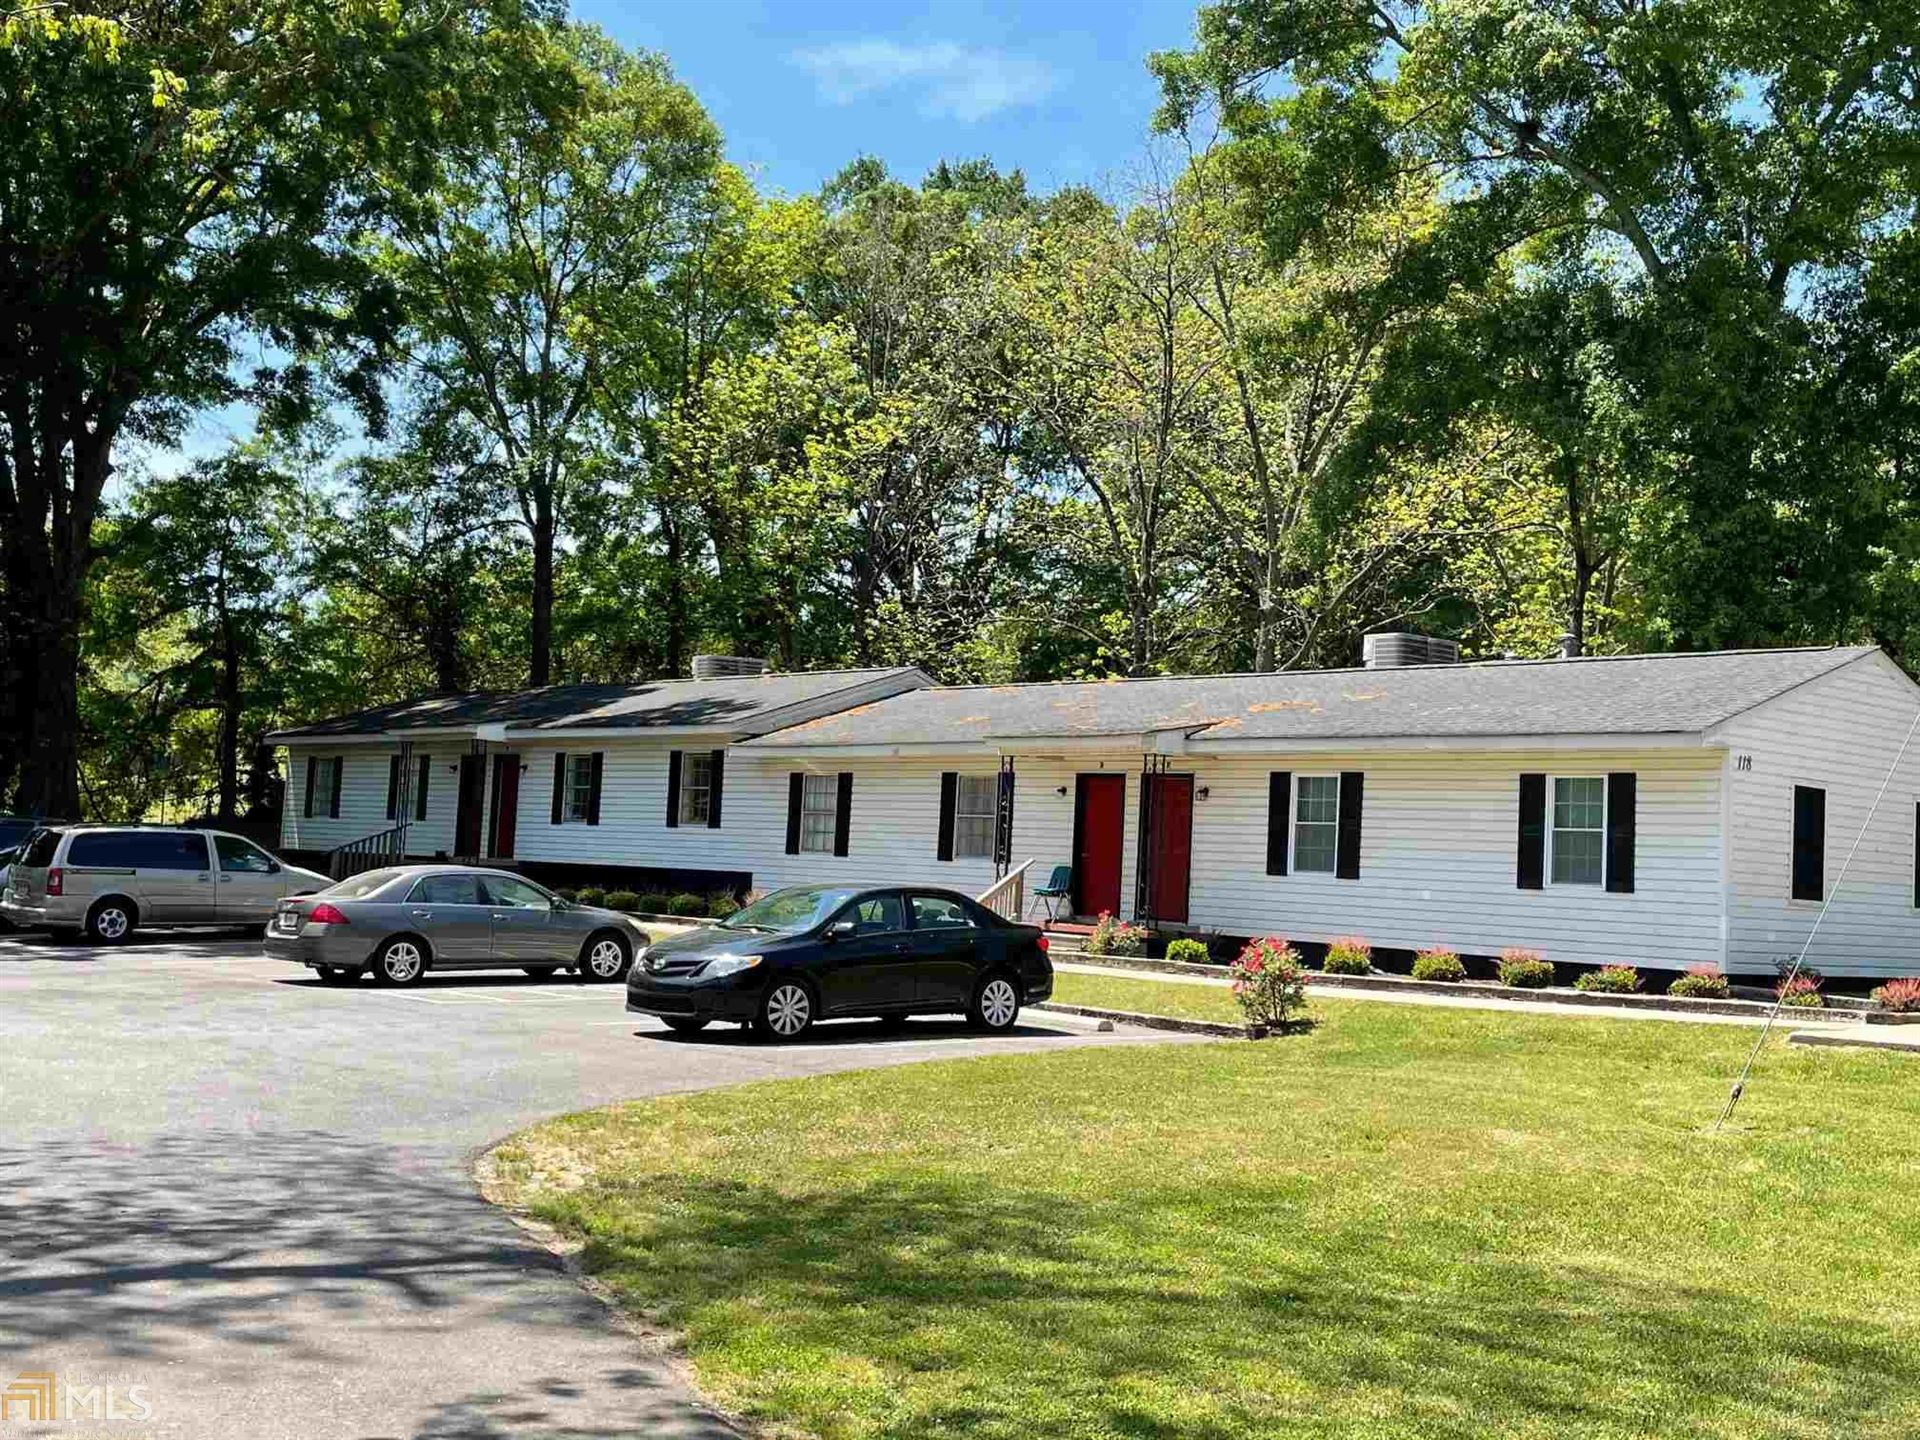 0 22 units Package, Griffin, GA 30223 - #: 8965637